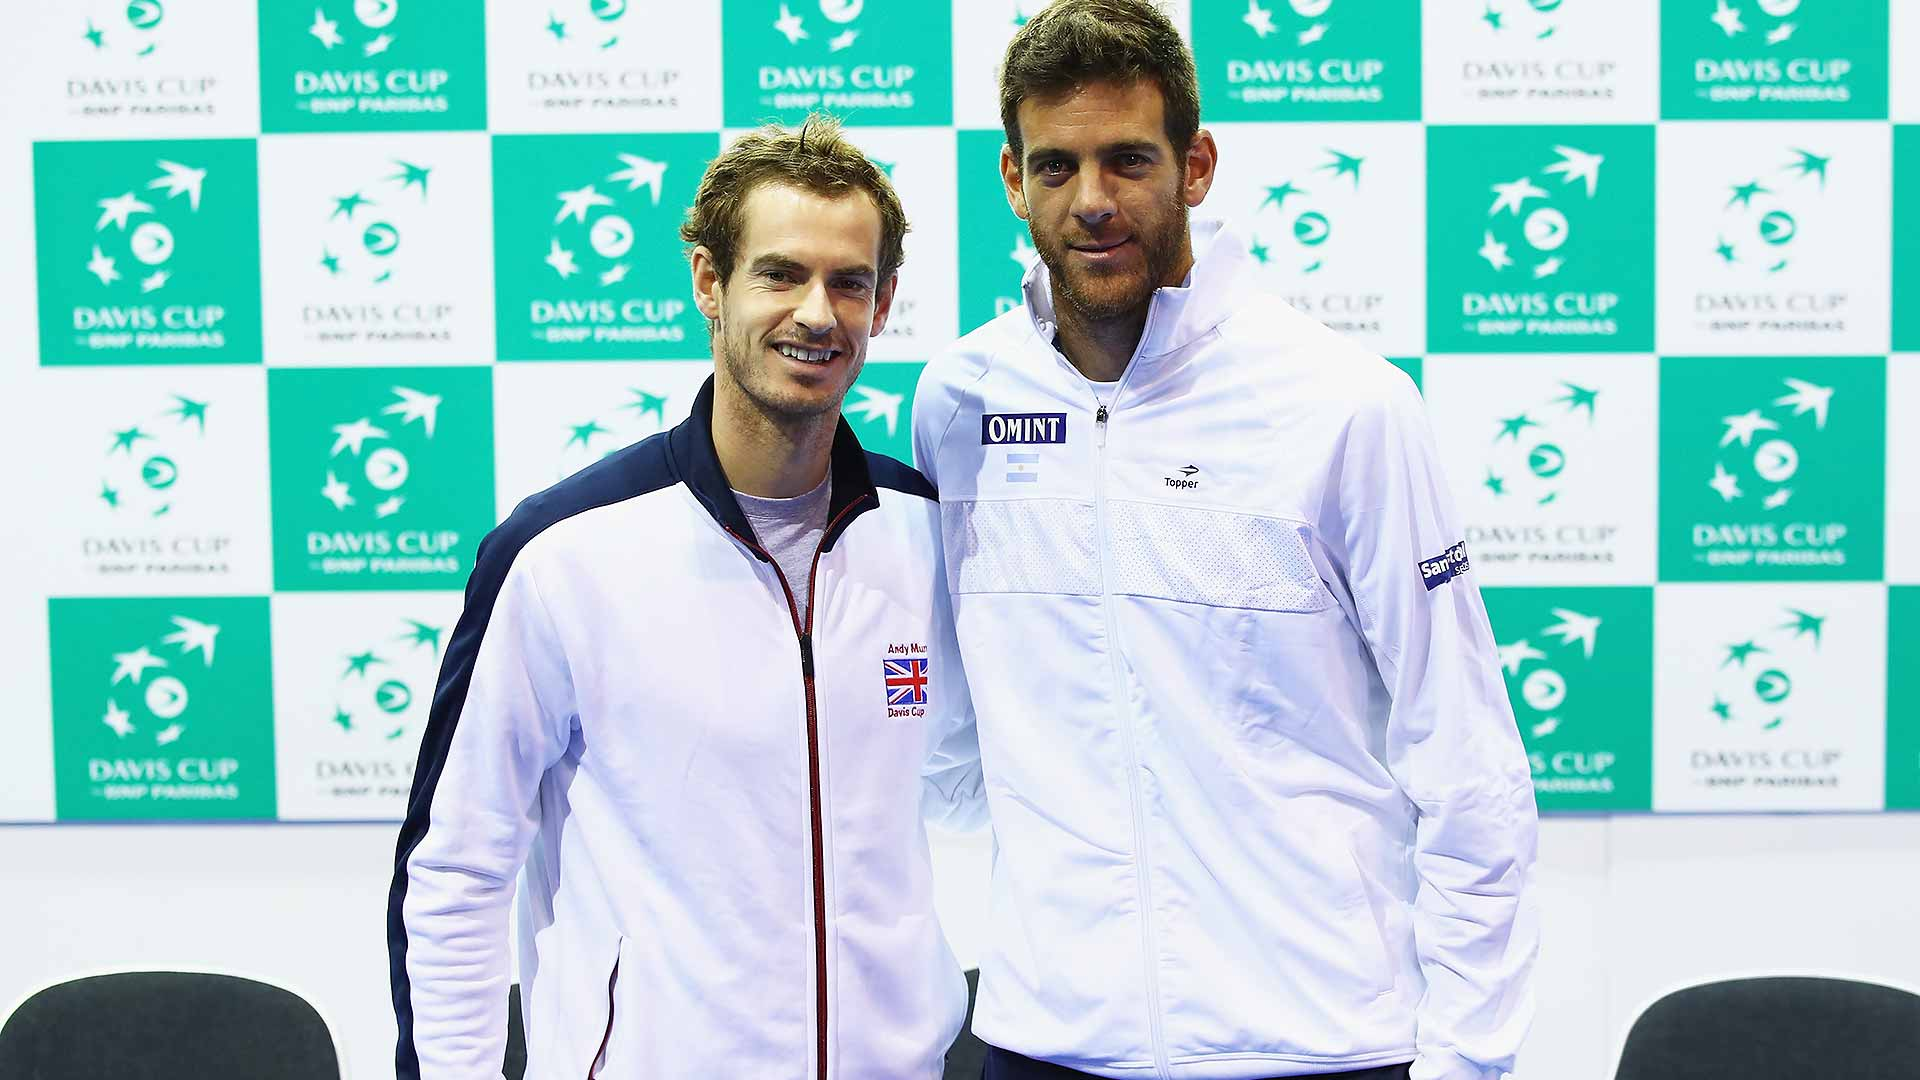 Andy Murray and Juan Martin del Potro will kick off the Great Britain-Argentina semi-final tie on Friday.